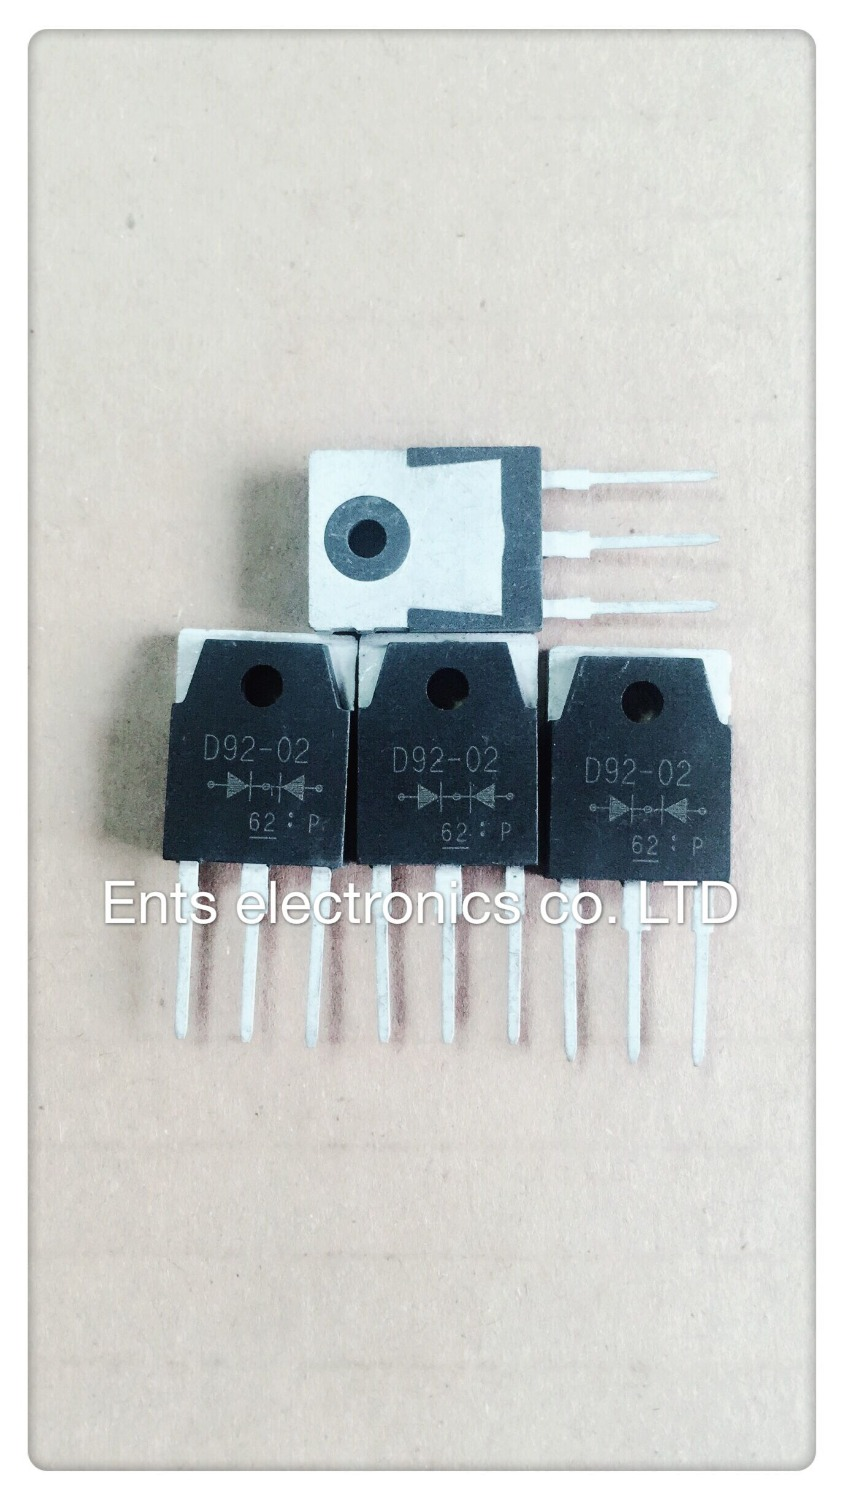 Free shipping 20pcslot d92 02 fast recovery rectifier diode free shipping 20pcslot d92 02 fast recovery rectifier diode welding dedicated 20a200v new original in tool parts from tools on aliexpress alibaba biocorpaavc